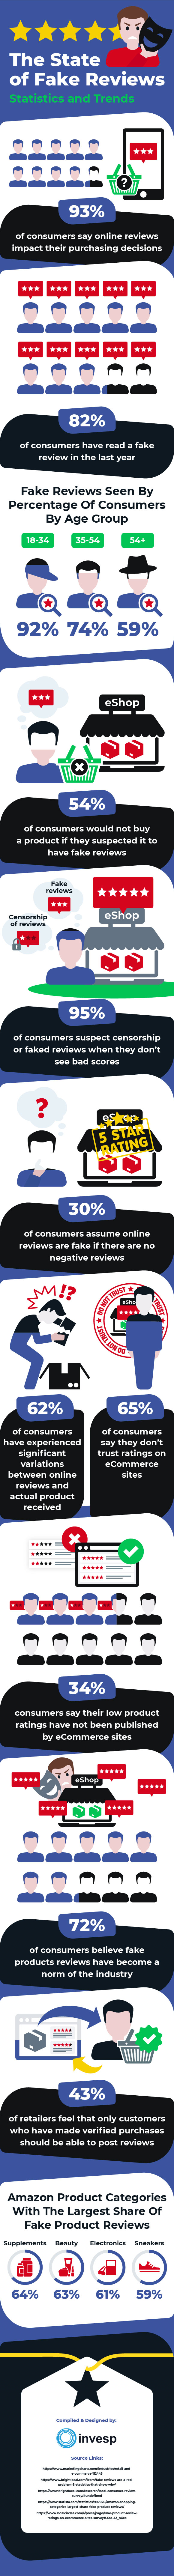 The State of Fake Reviews – Statistics and Trends